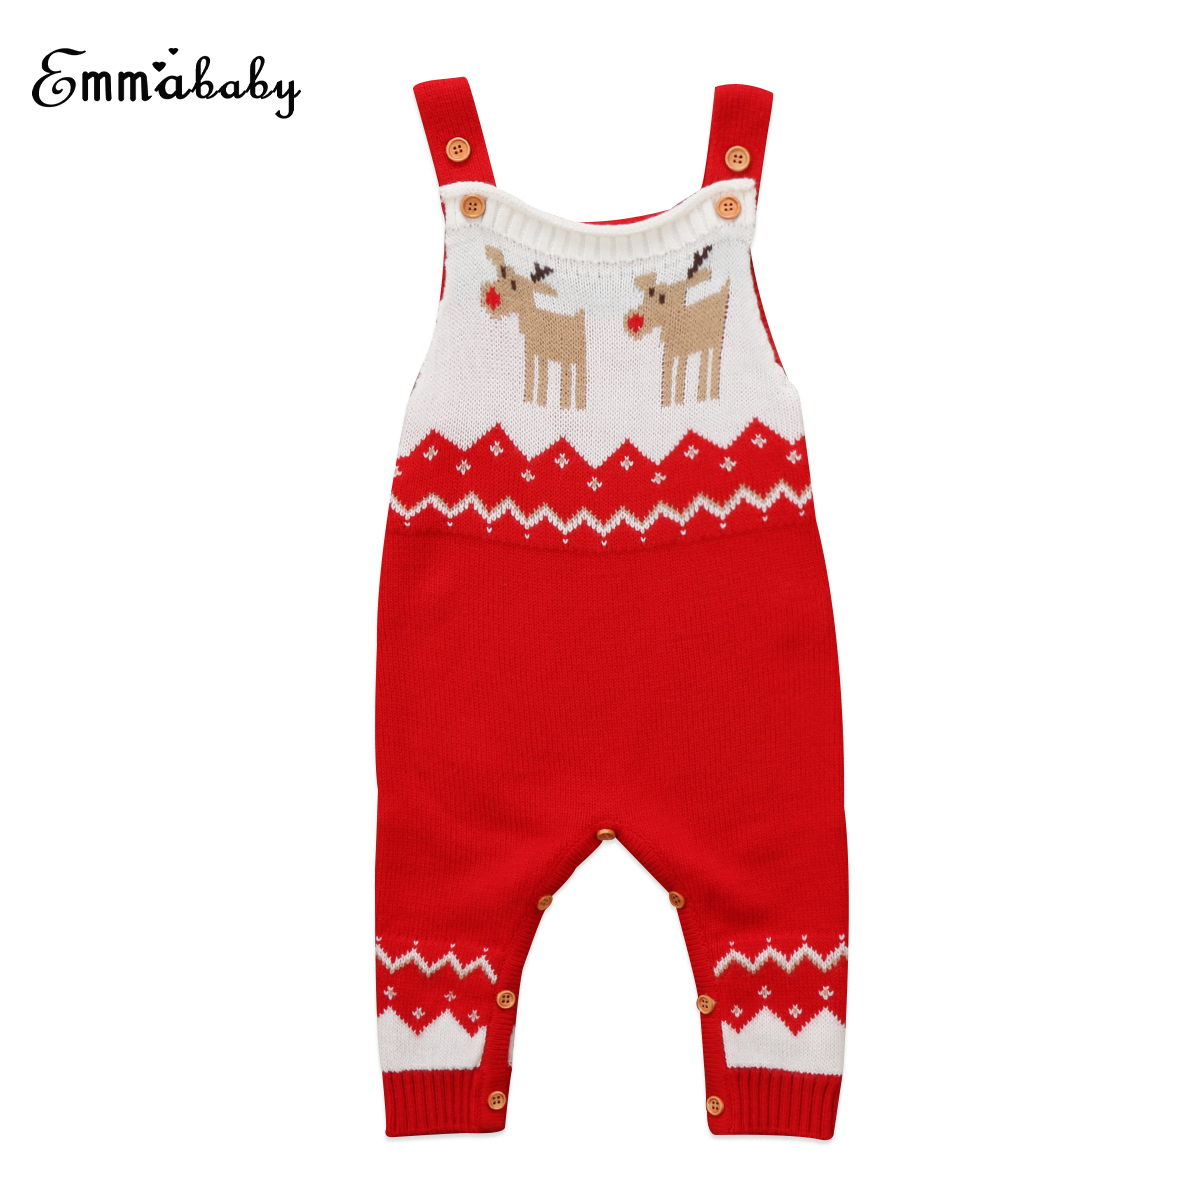 2018 new winter kid Christmas rompers Newborn Baby boy Girl Xmas Deer sleeveless Knitted Romper cute babies Outfits Clothes